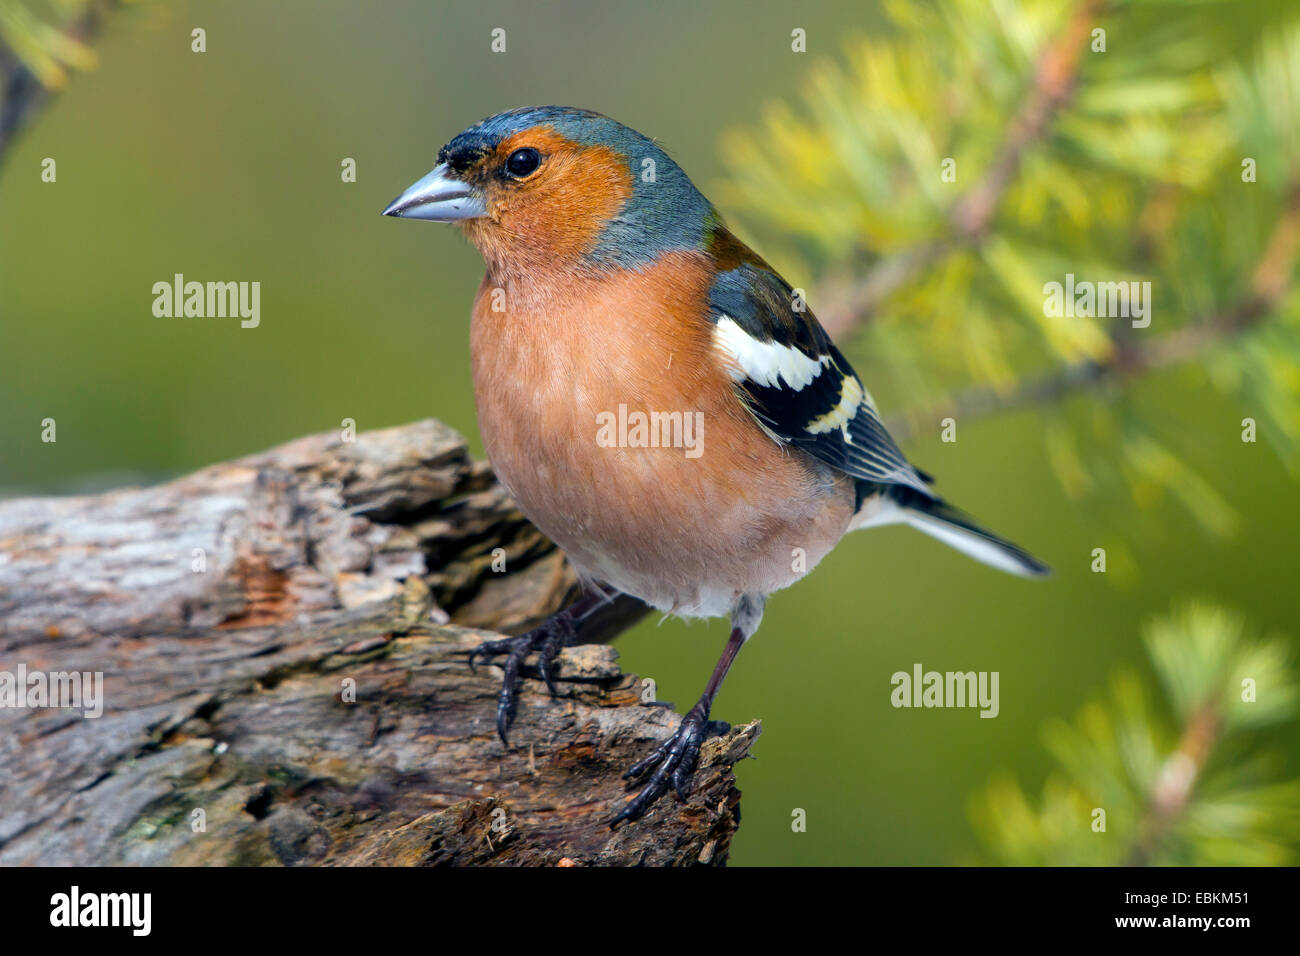 chaffinch (Fringilla coelebs), sitting on a root, Switzerland, Graubuenden, Arosa - Stock Image